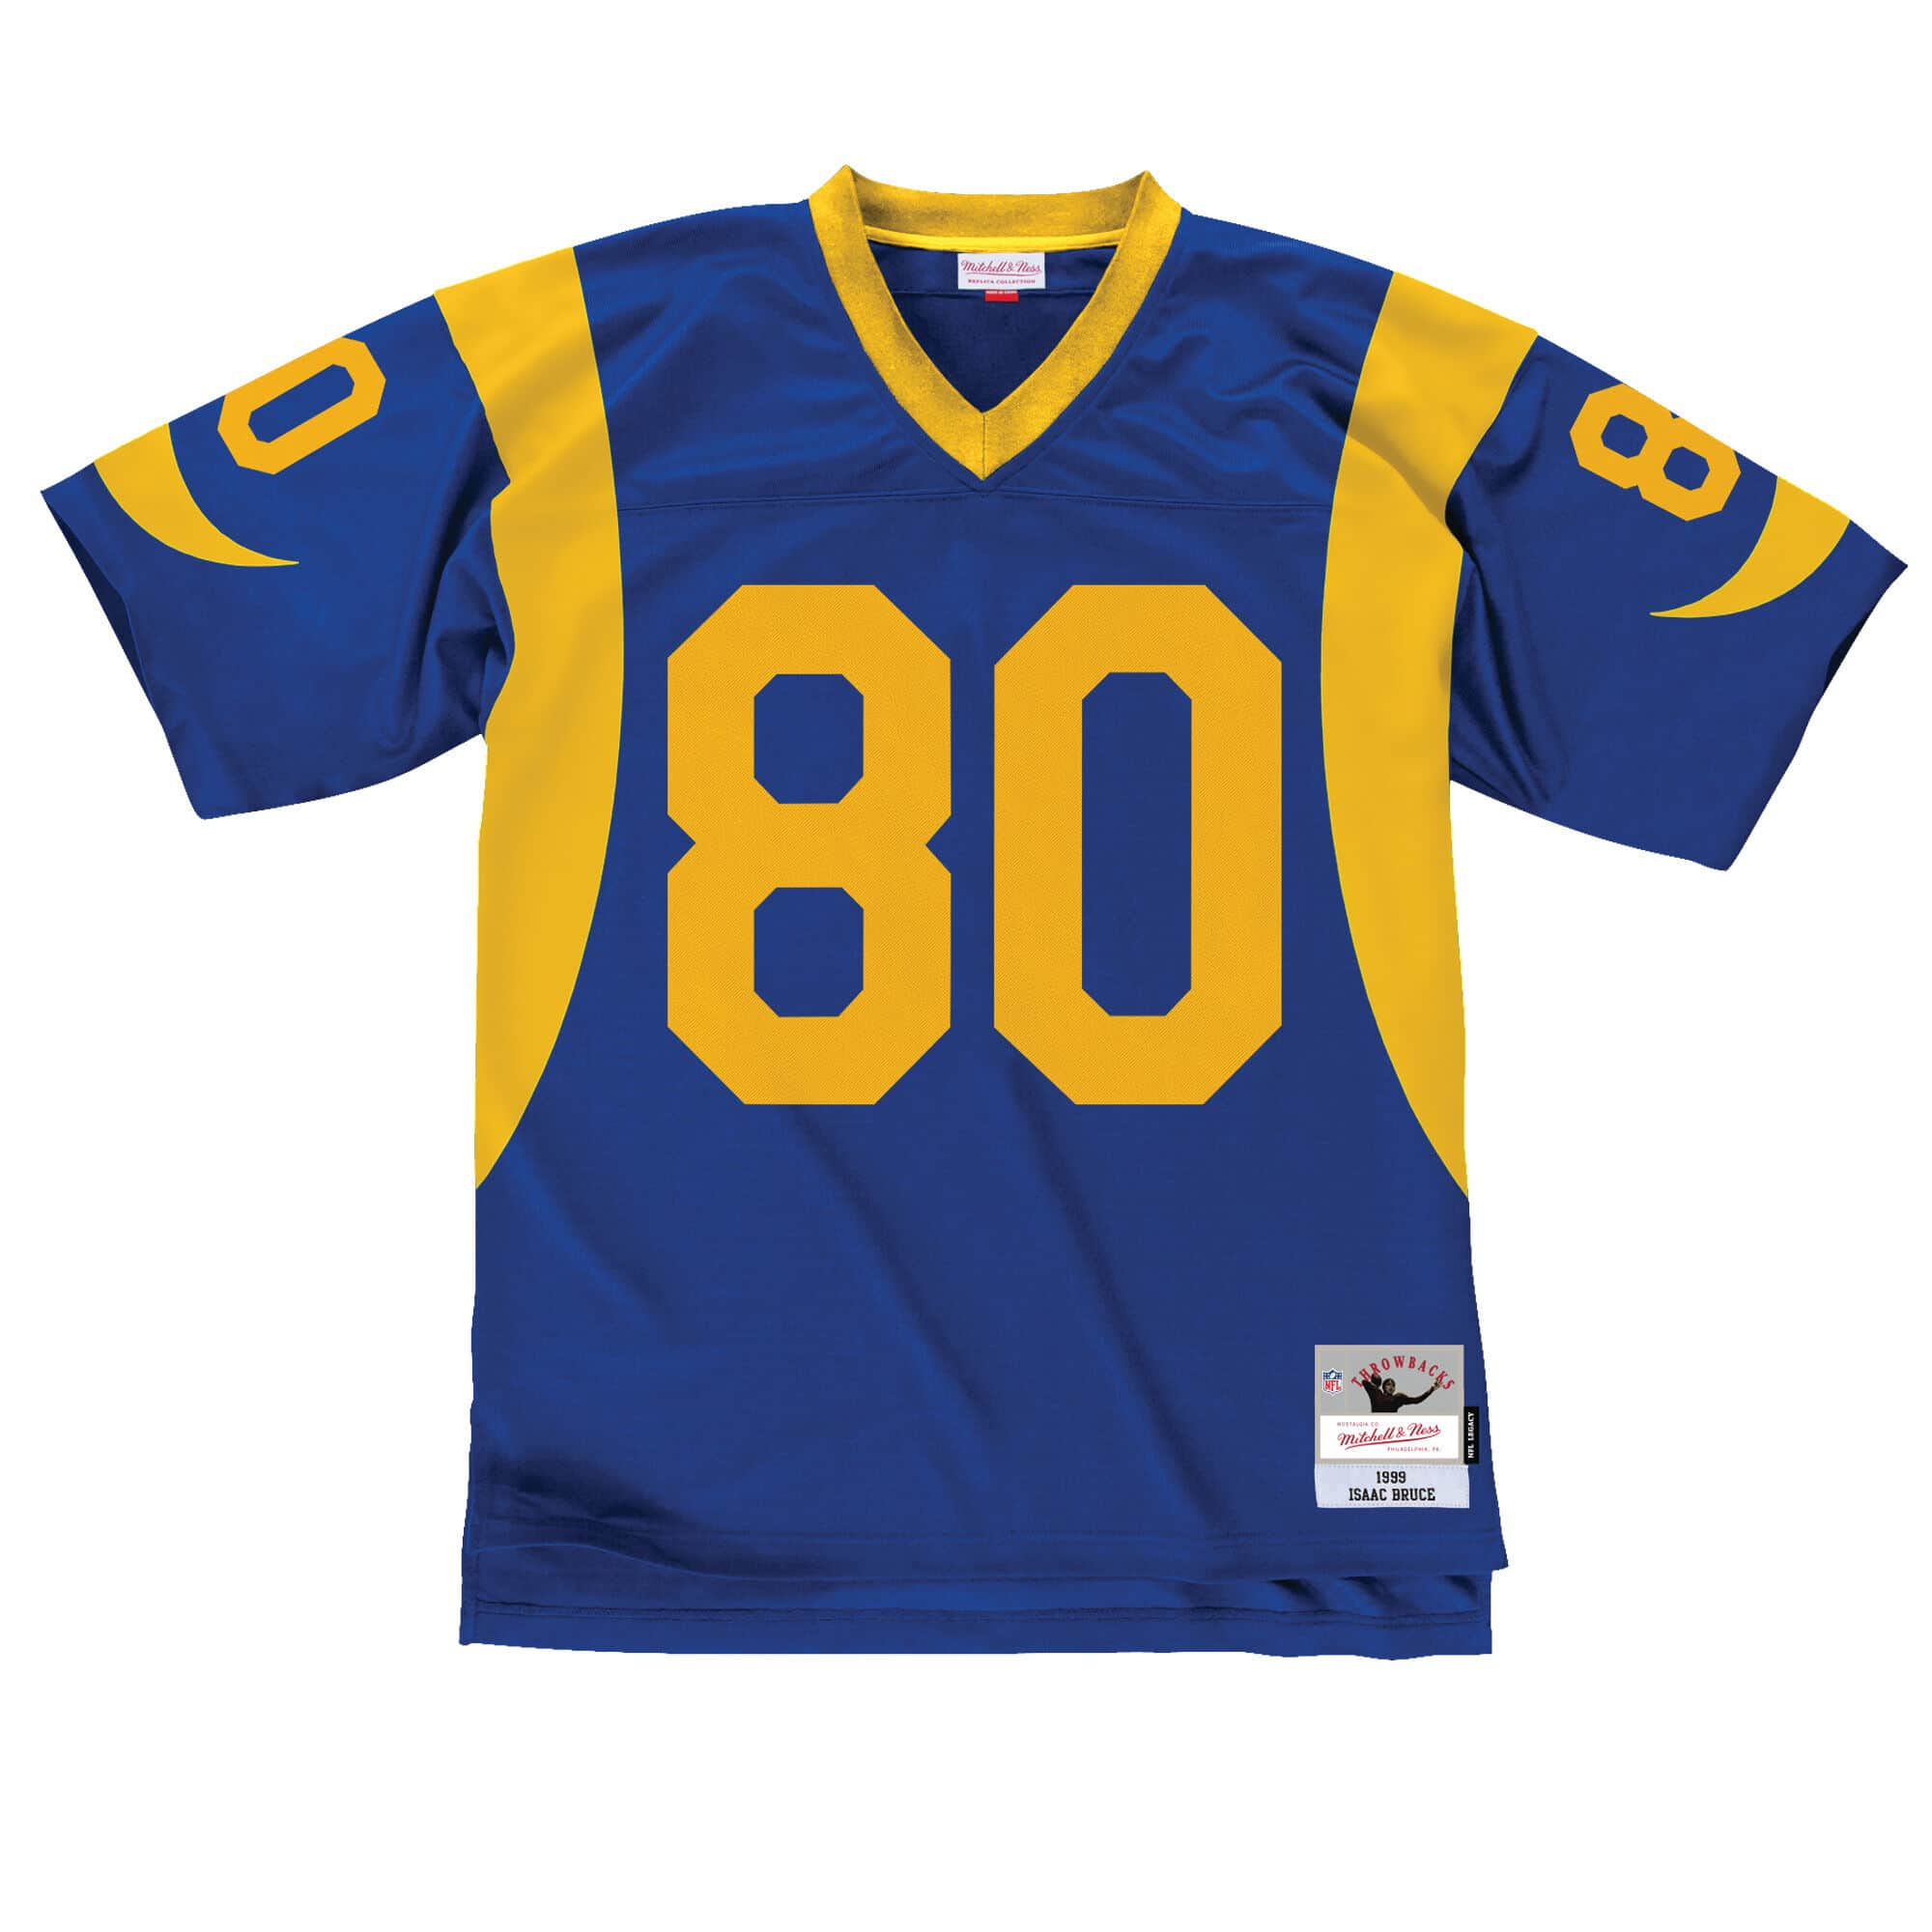 Isaac Bruce 1999 St. Louis Rams Legacy Jersey